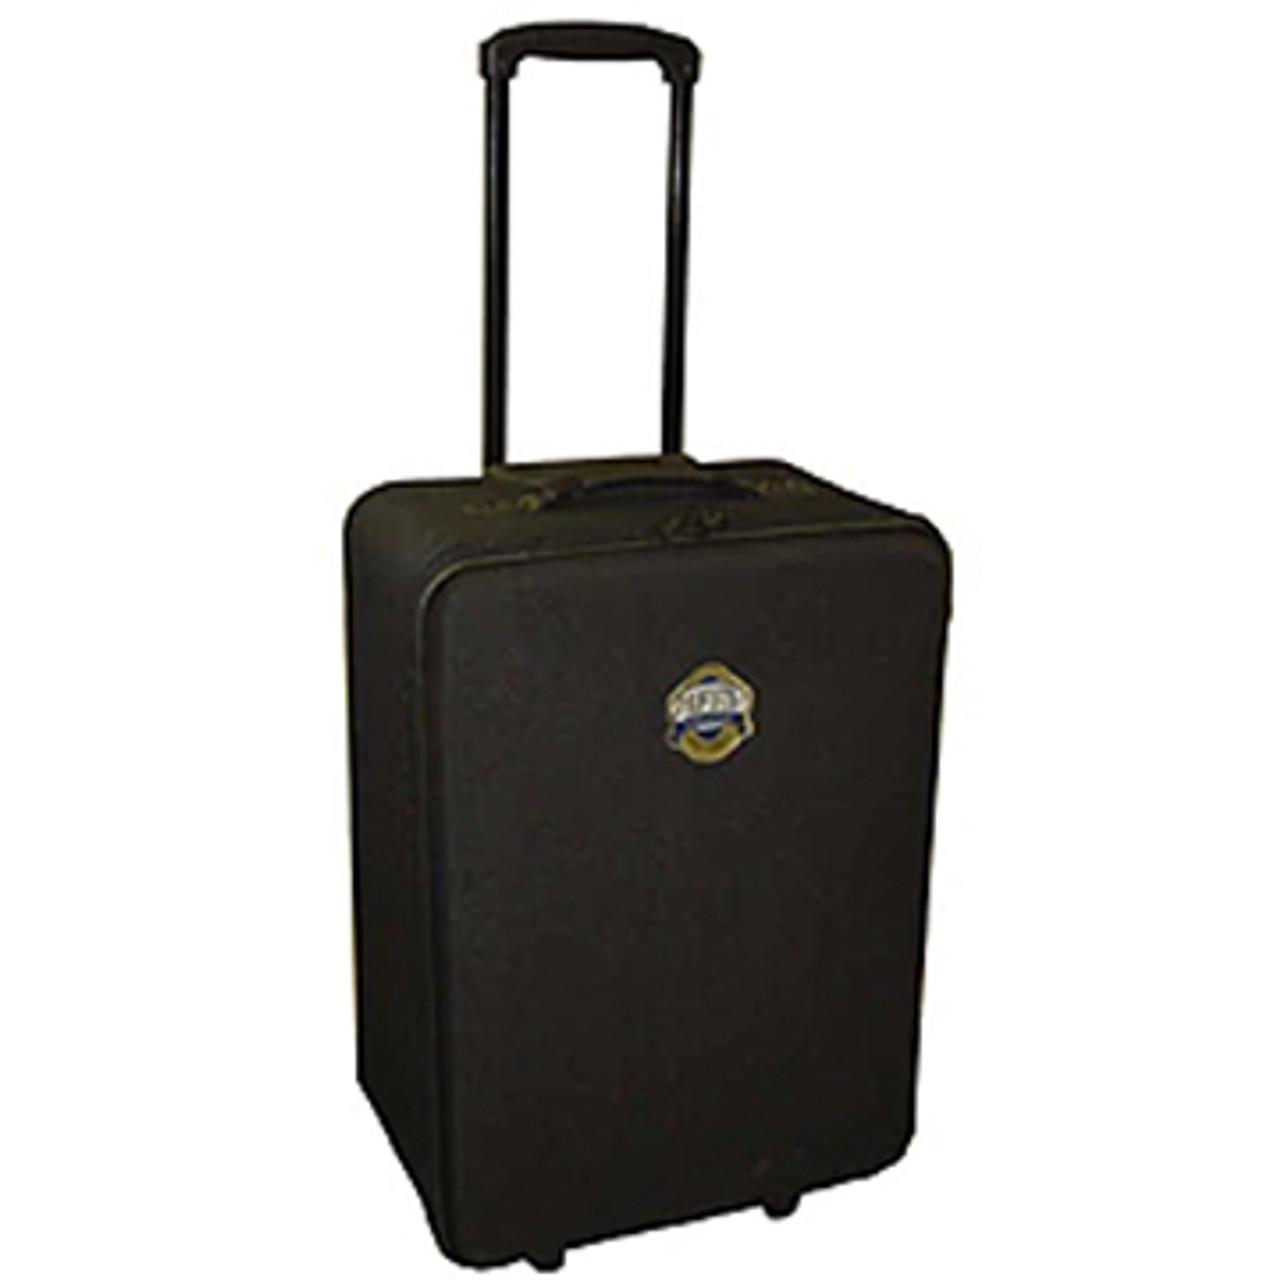 Jiffy Steamer Travel Case